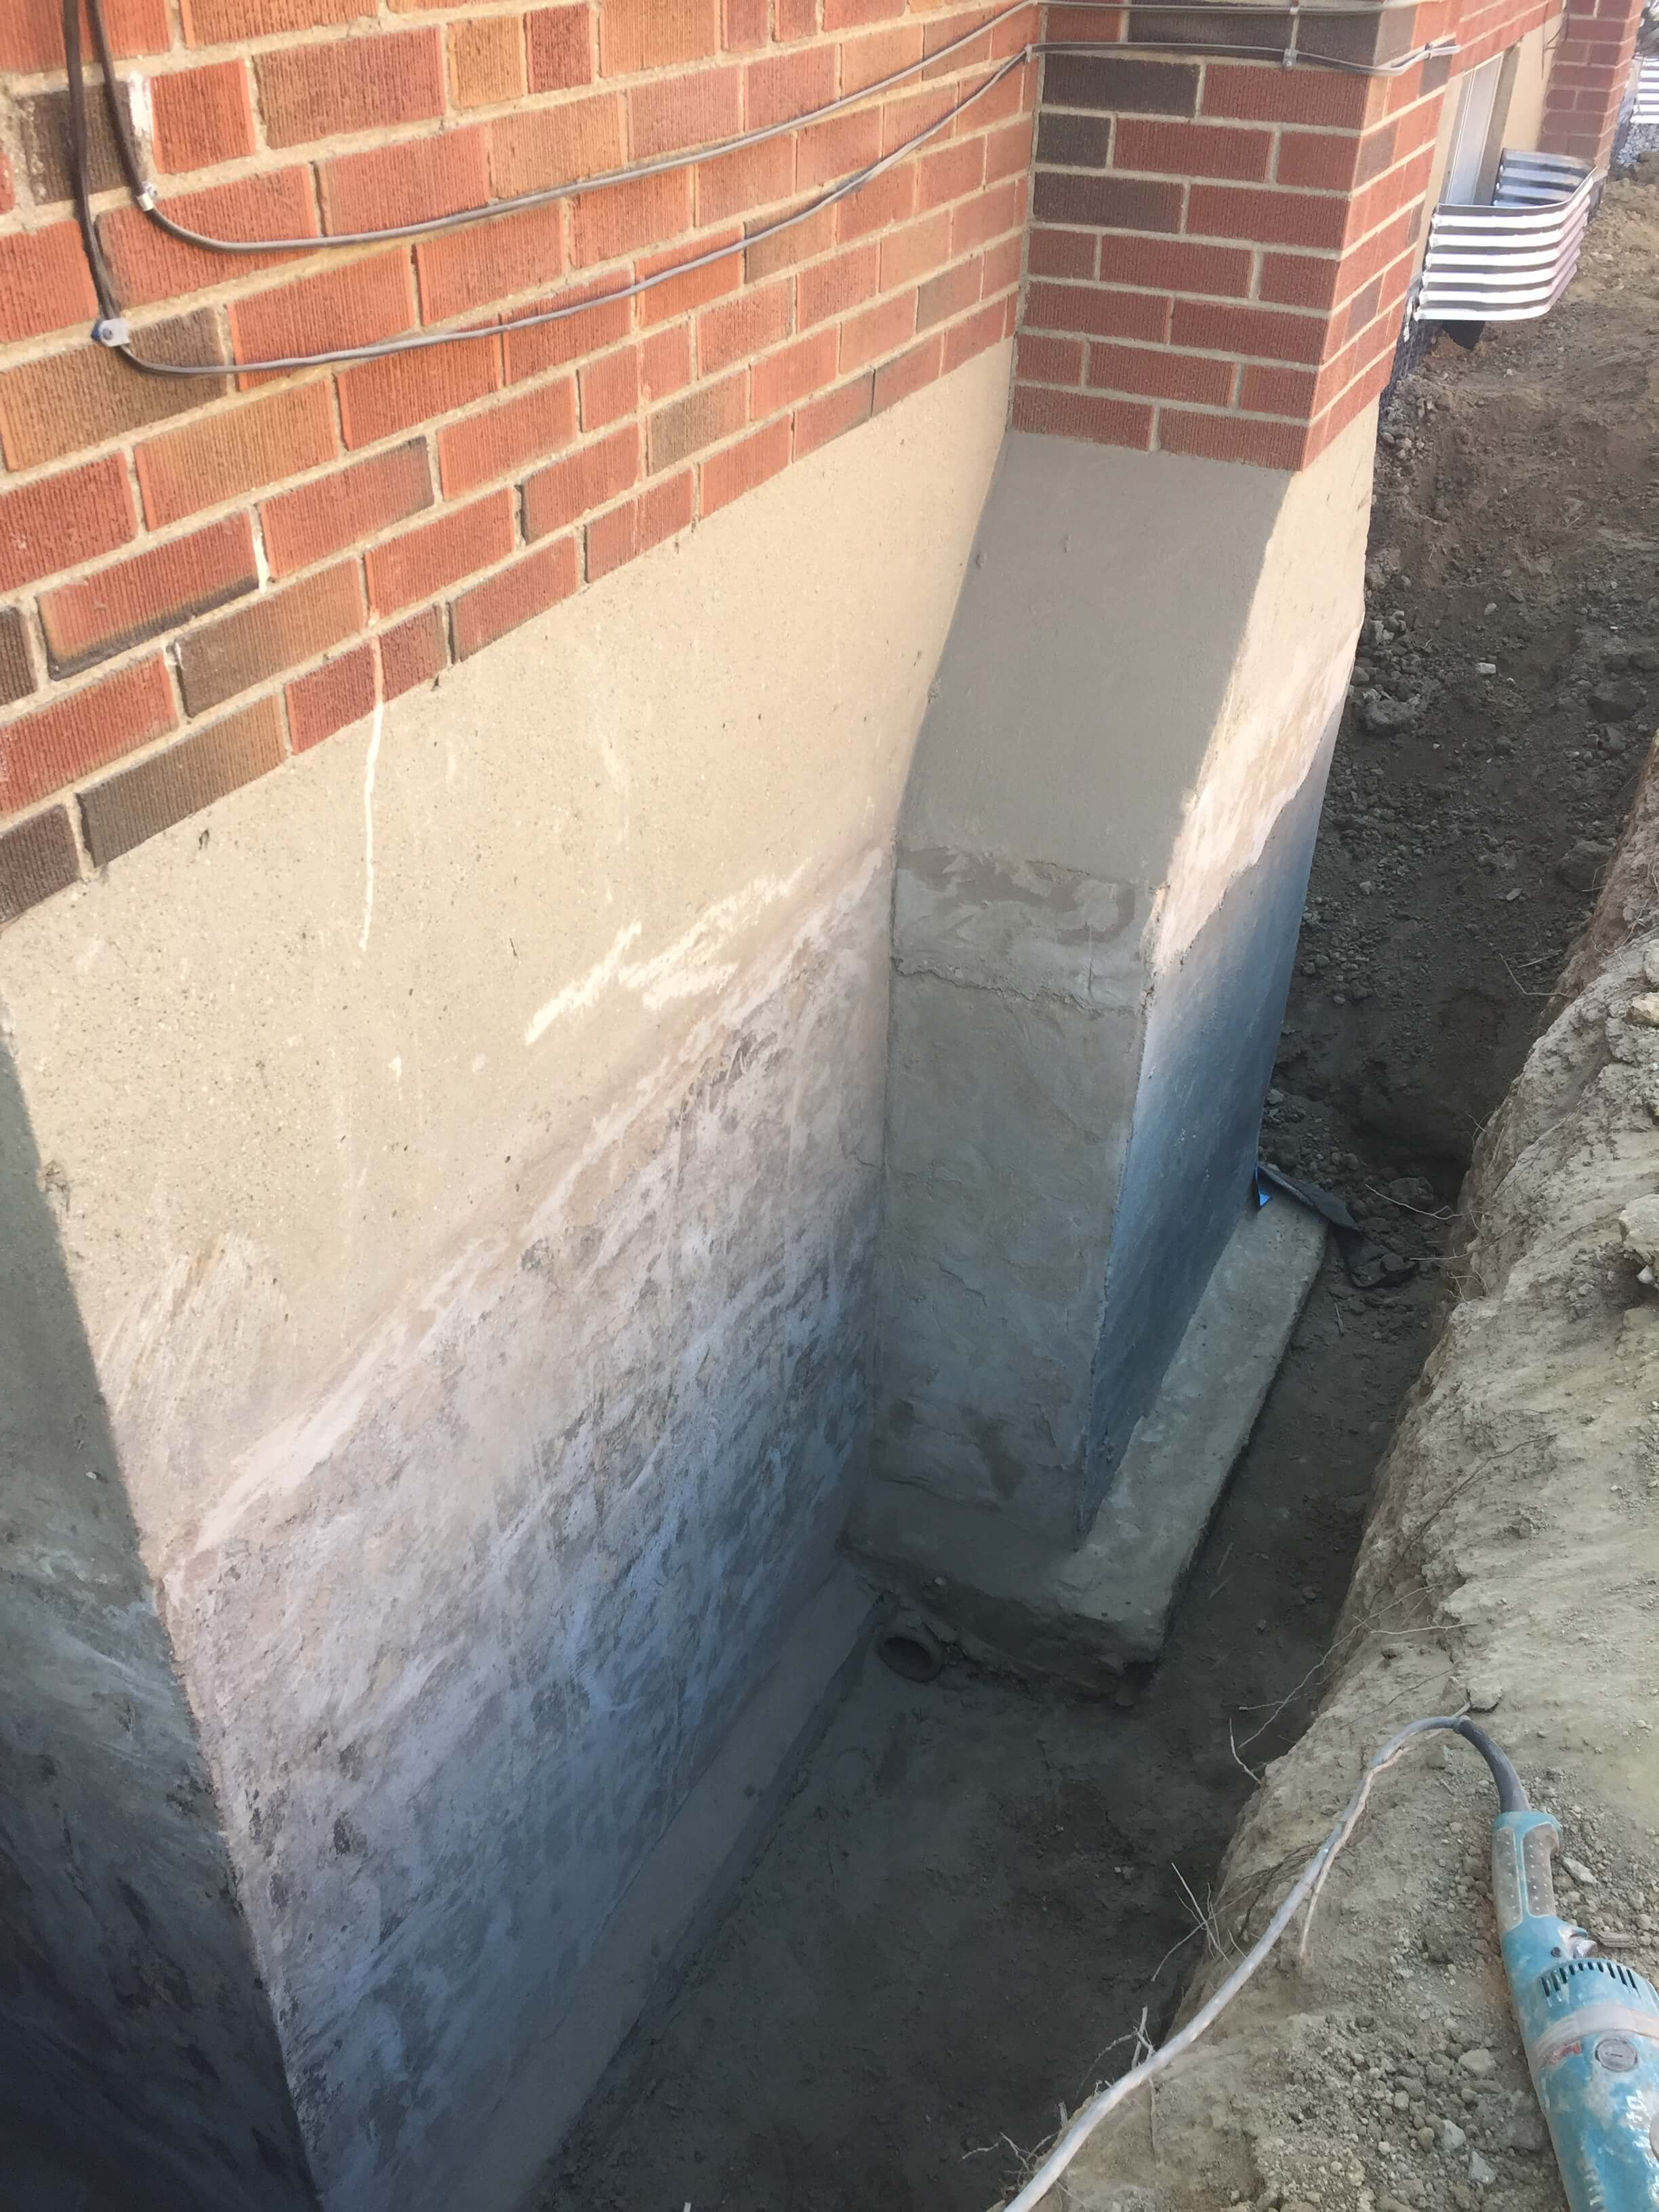 Waterproofing-Contractor-Toronto-Scarborough-Citadel-Dr-6